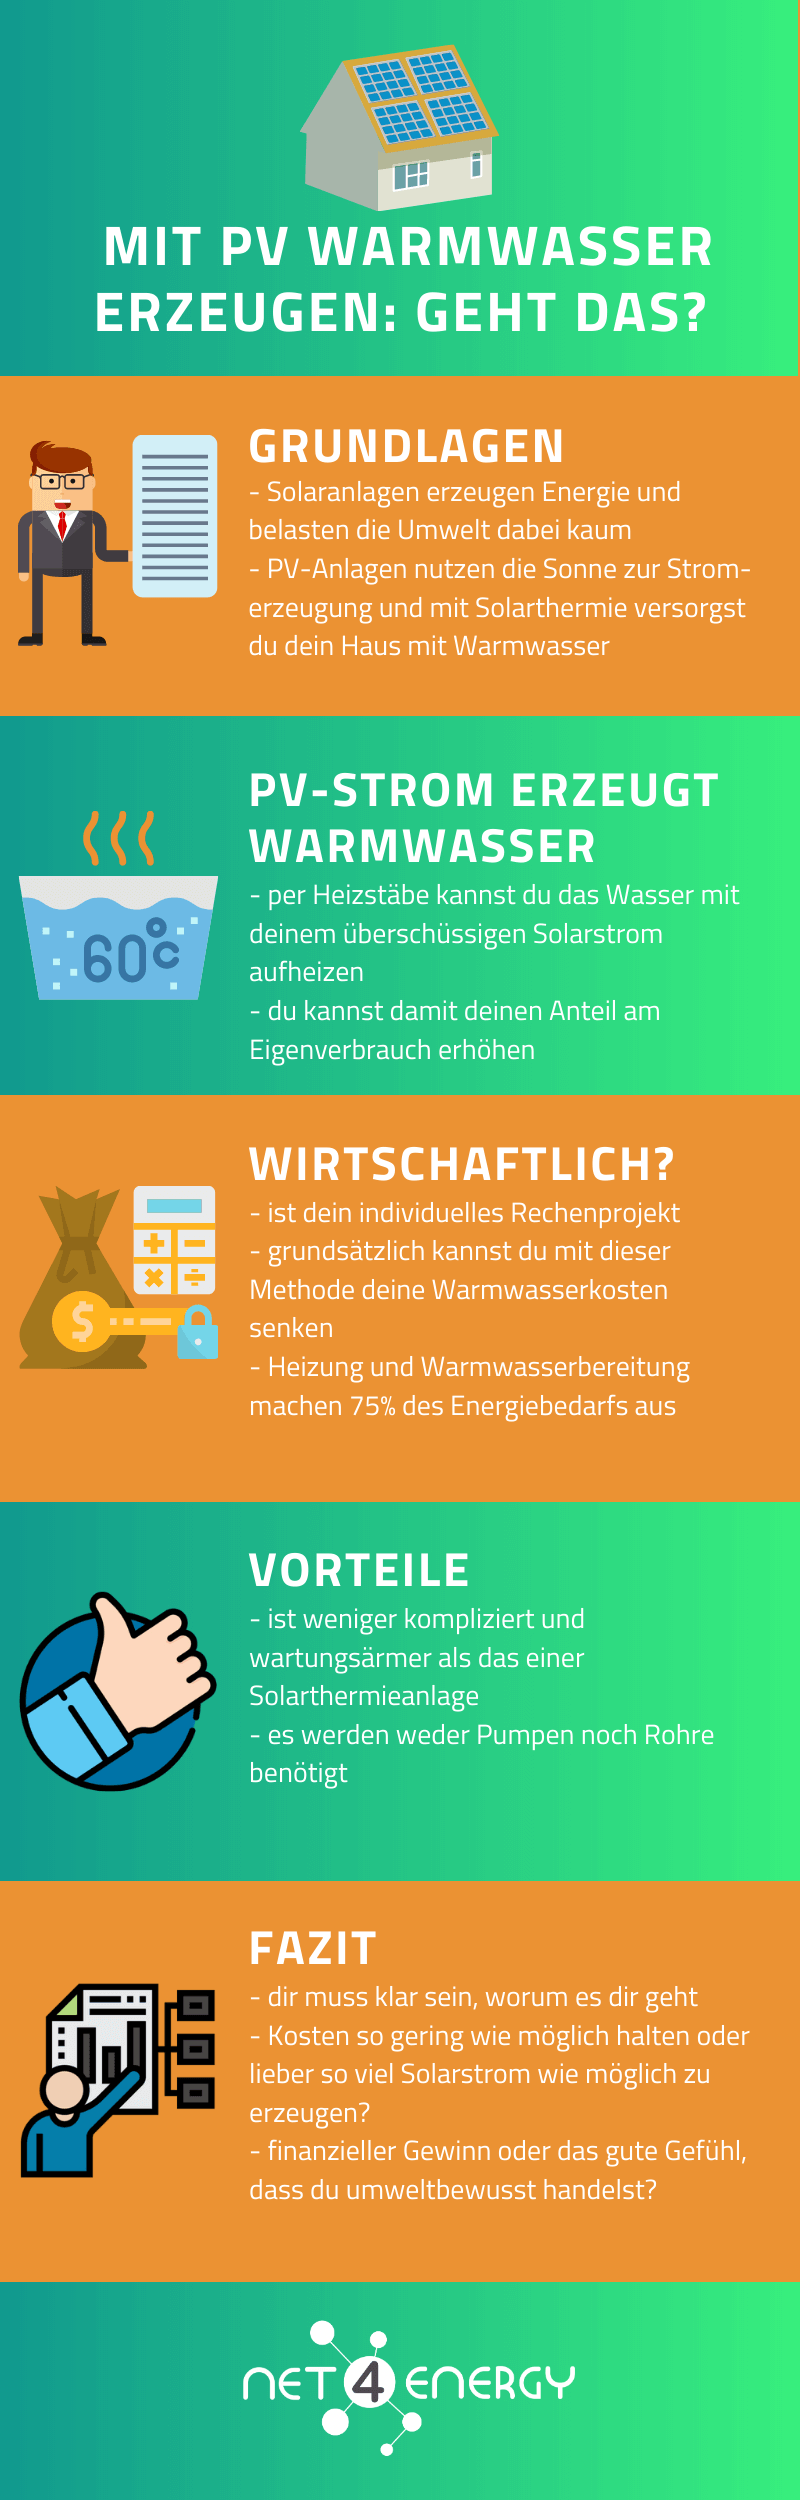 photovoltaik-warmwasser-photovoltaikanlage-infografik-net4energy